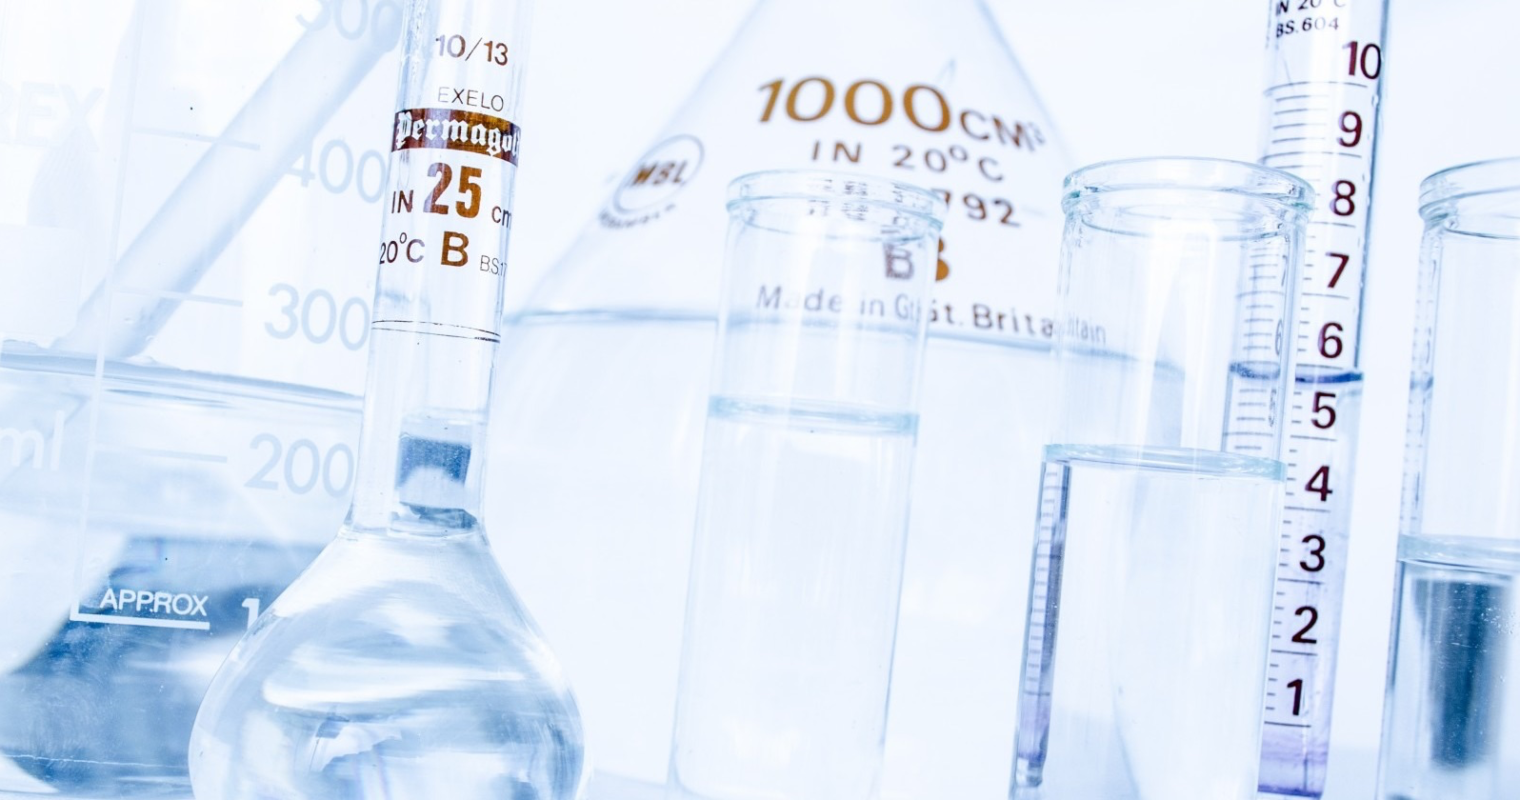 Try Debunking SEO Best Practices with these 4 Simple Experiments